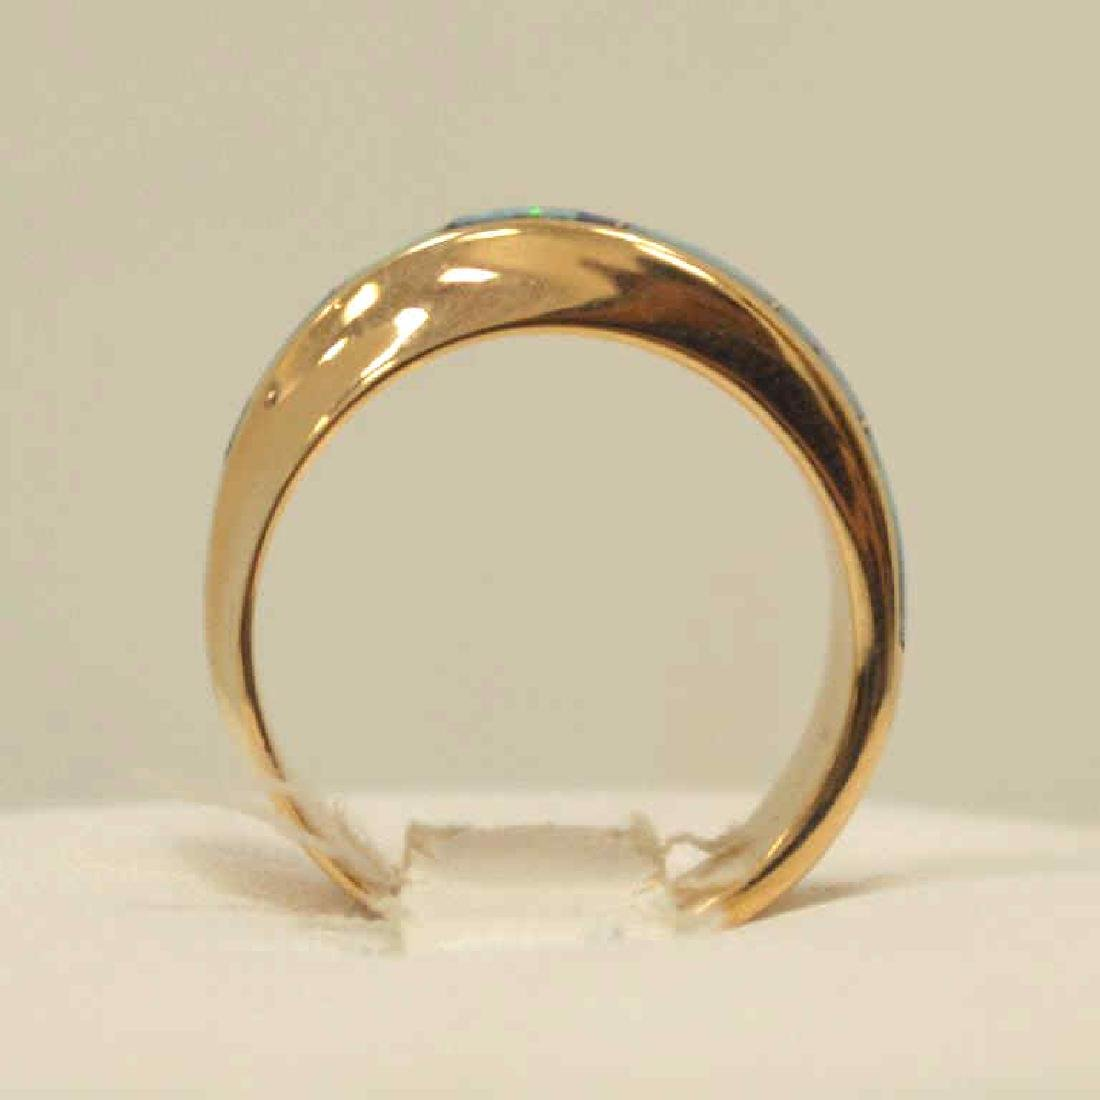 14kt yellow gold opal inlay ring - 3